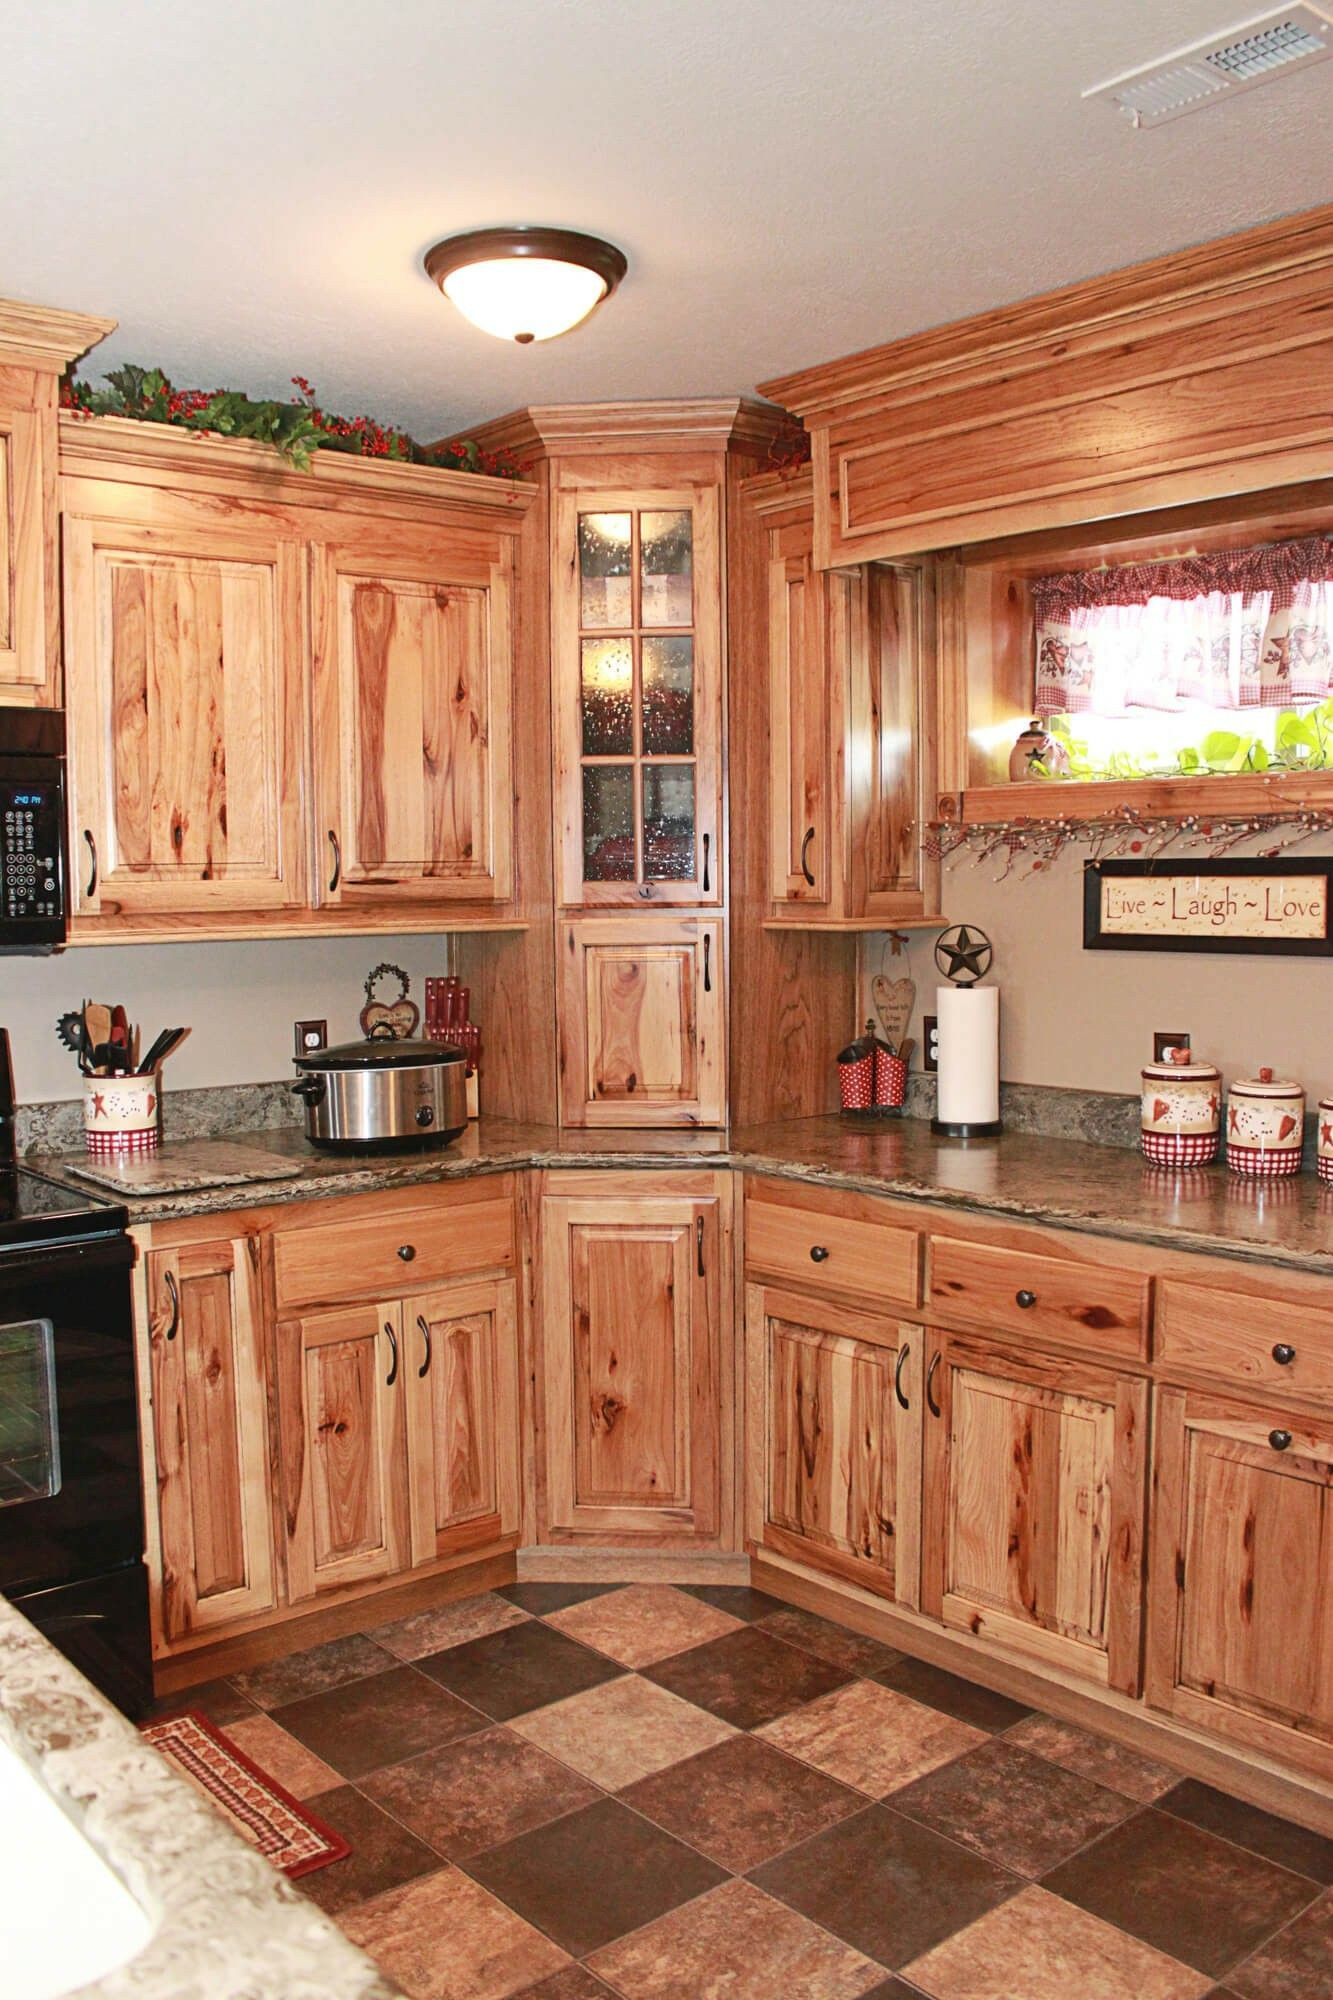 Best Rustic Kitchen Cabinet Ideas And Design Gallery Looking For More Rustic Kitchen Cabinet Photos And Gallery Visit The Site